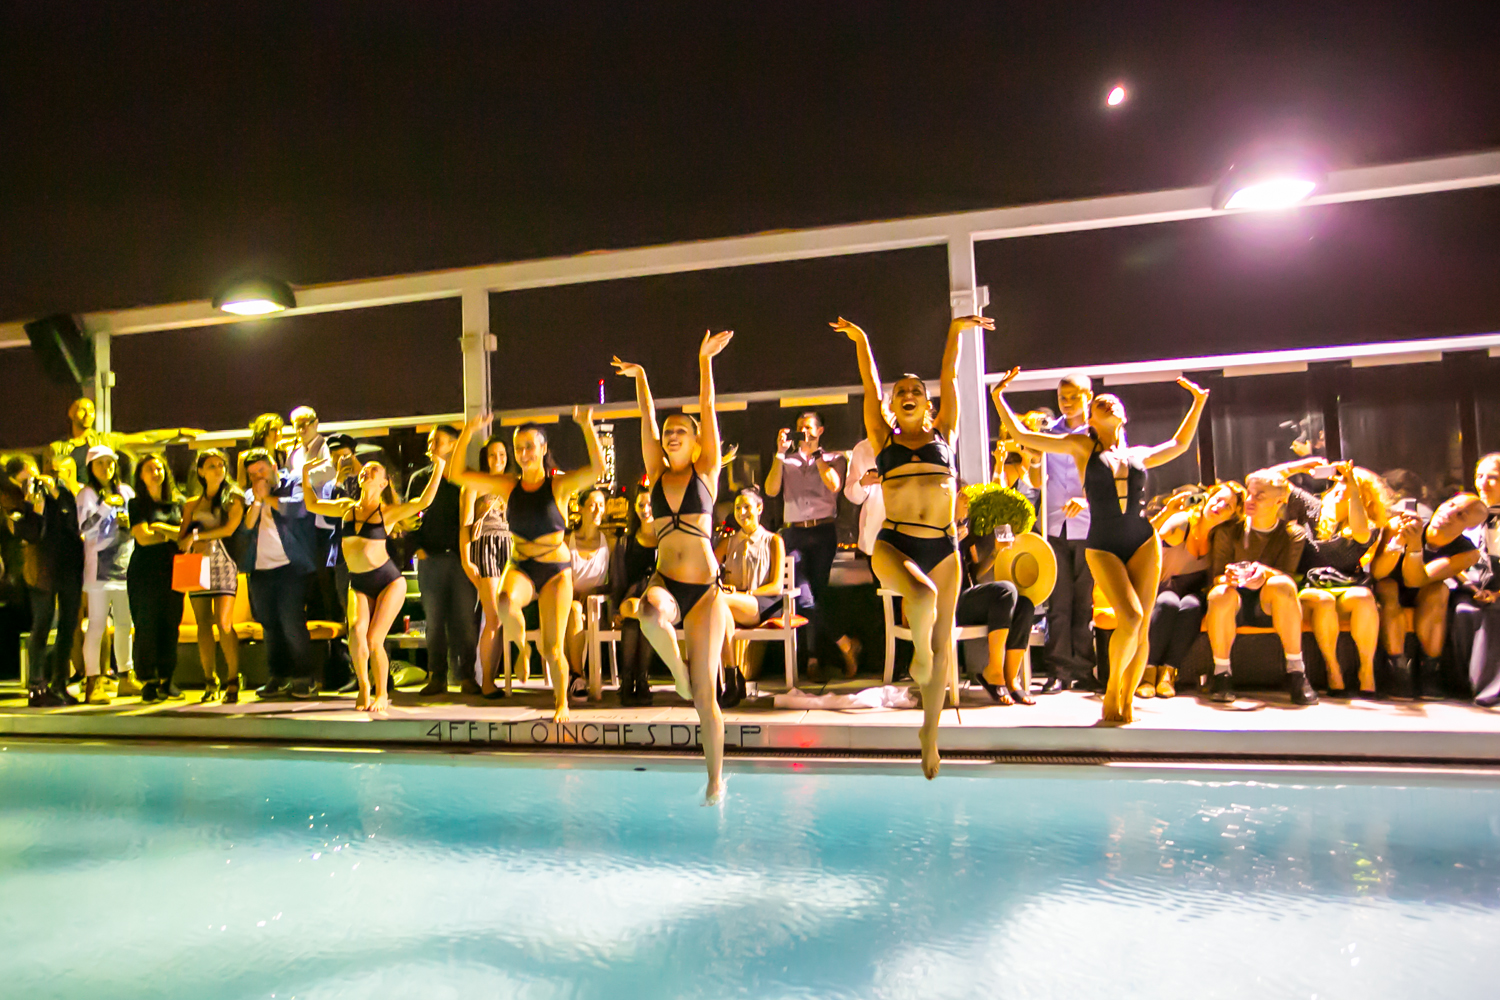 Aqualillies synchronized swim performance in BOND by Chromat